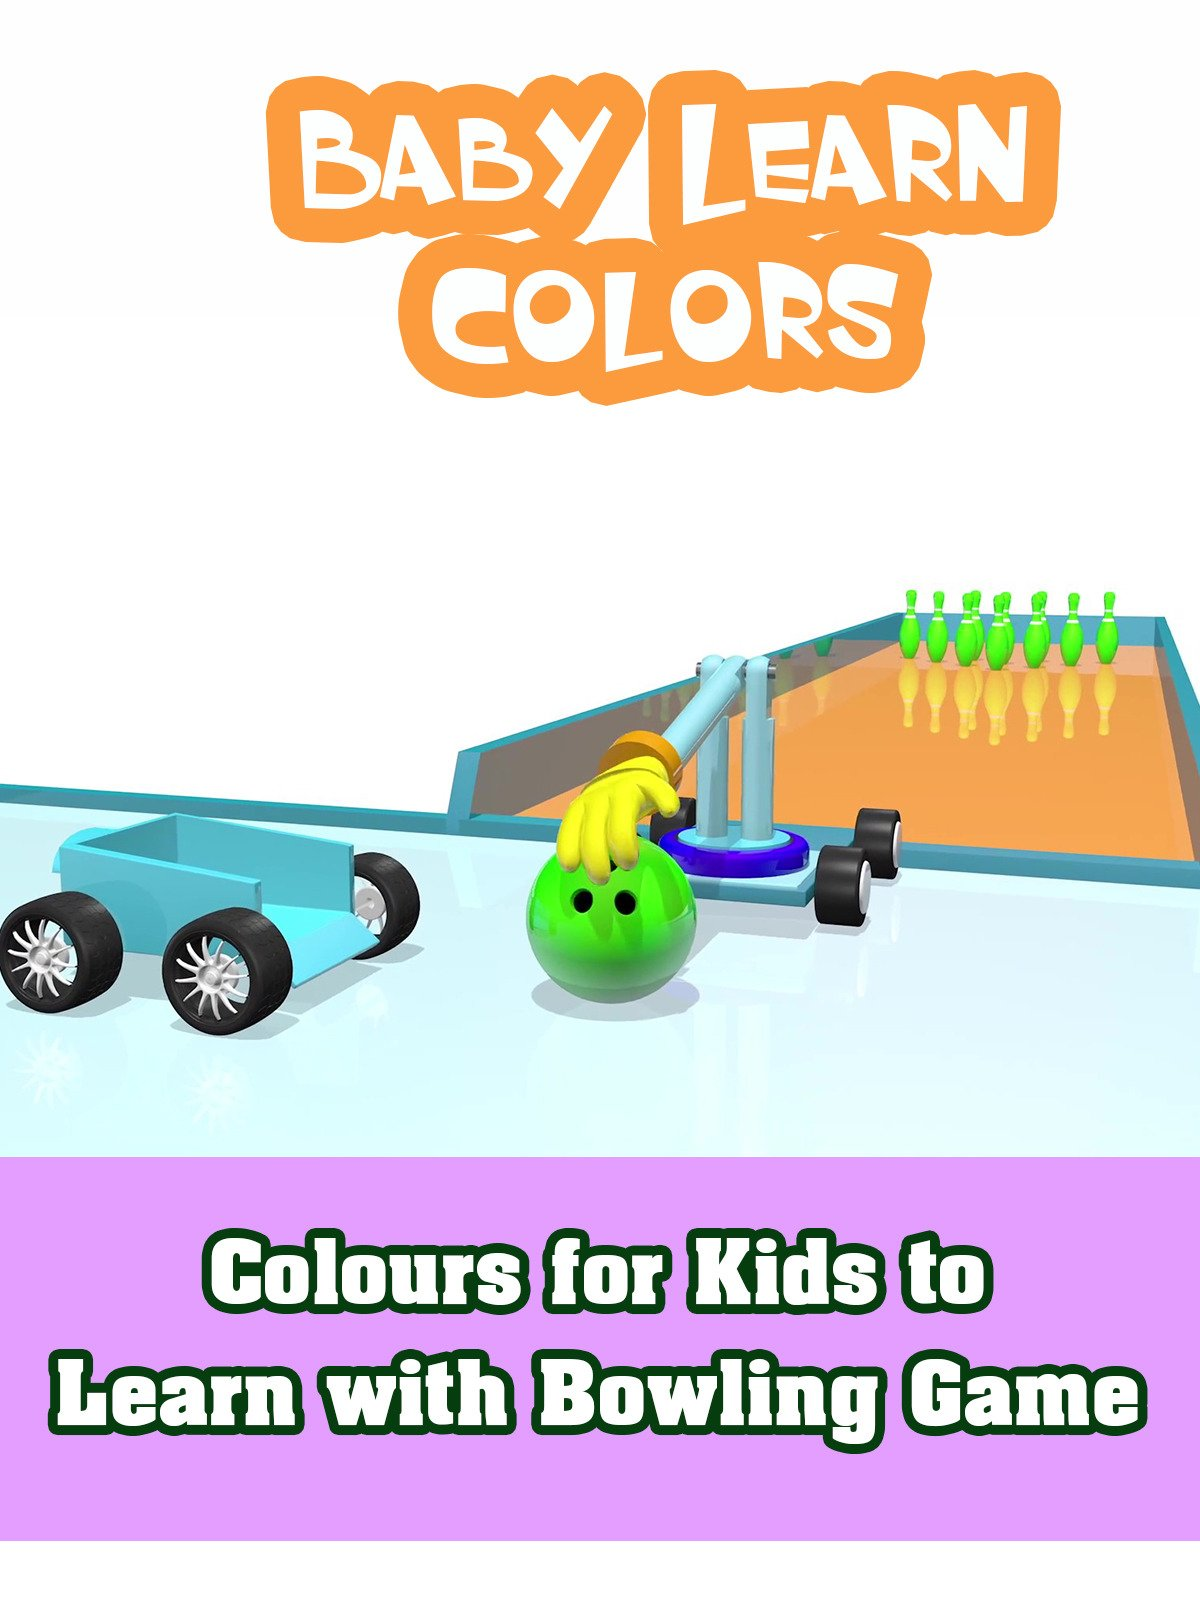 Colours for Kids to Learn with Bowling Game